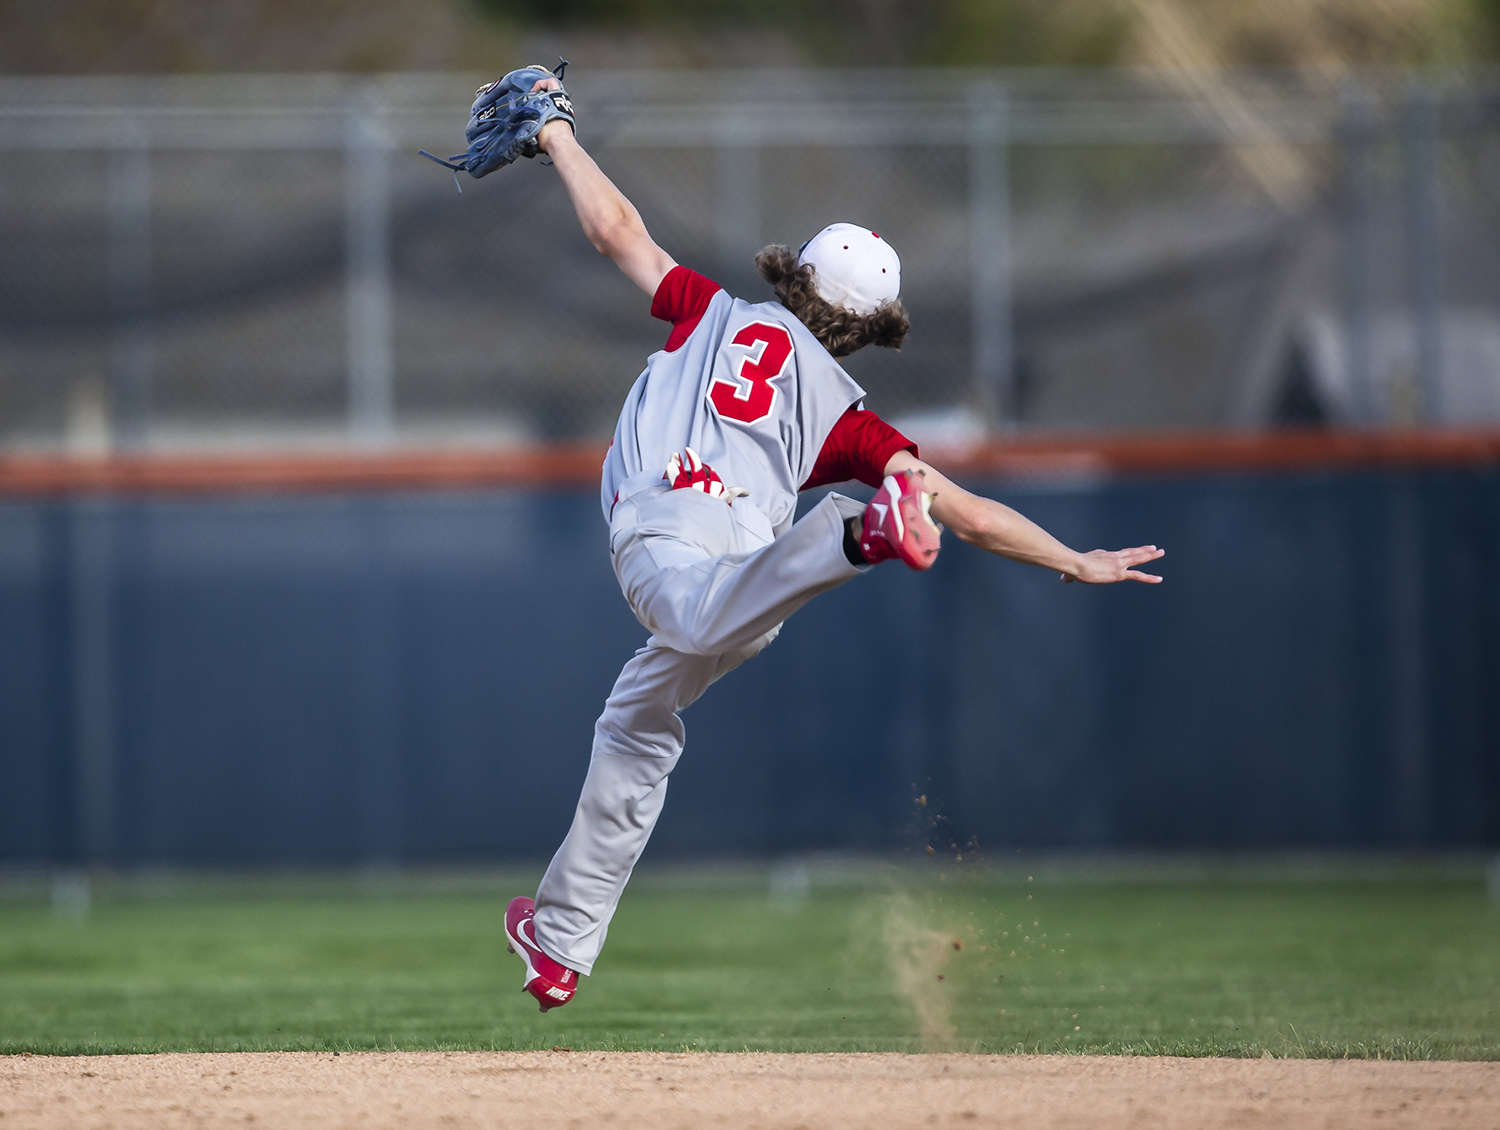 Pleasant Plains Reese Snell (3) makes a leaping catch on the a line drive for an out against New Berlin in the 3rd inning at New Berlin High School, Wednesday, April 17, 2019, in New Berlin, Ill. [Justin L. Fowler/The State Journal-Register]